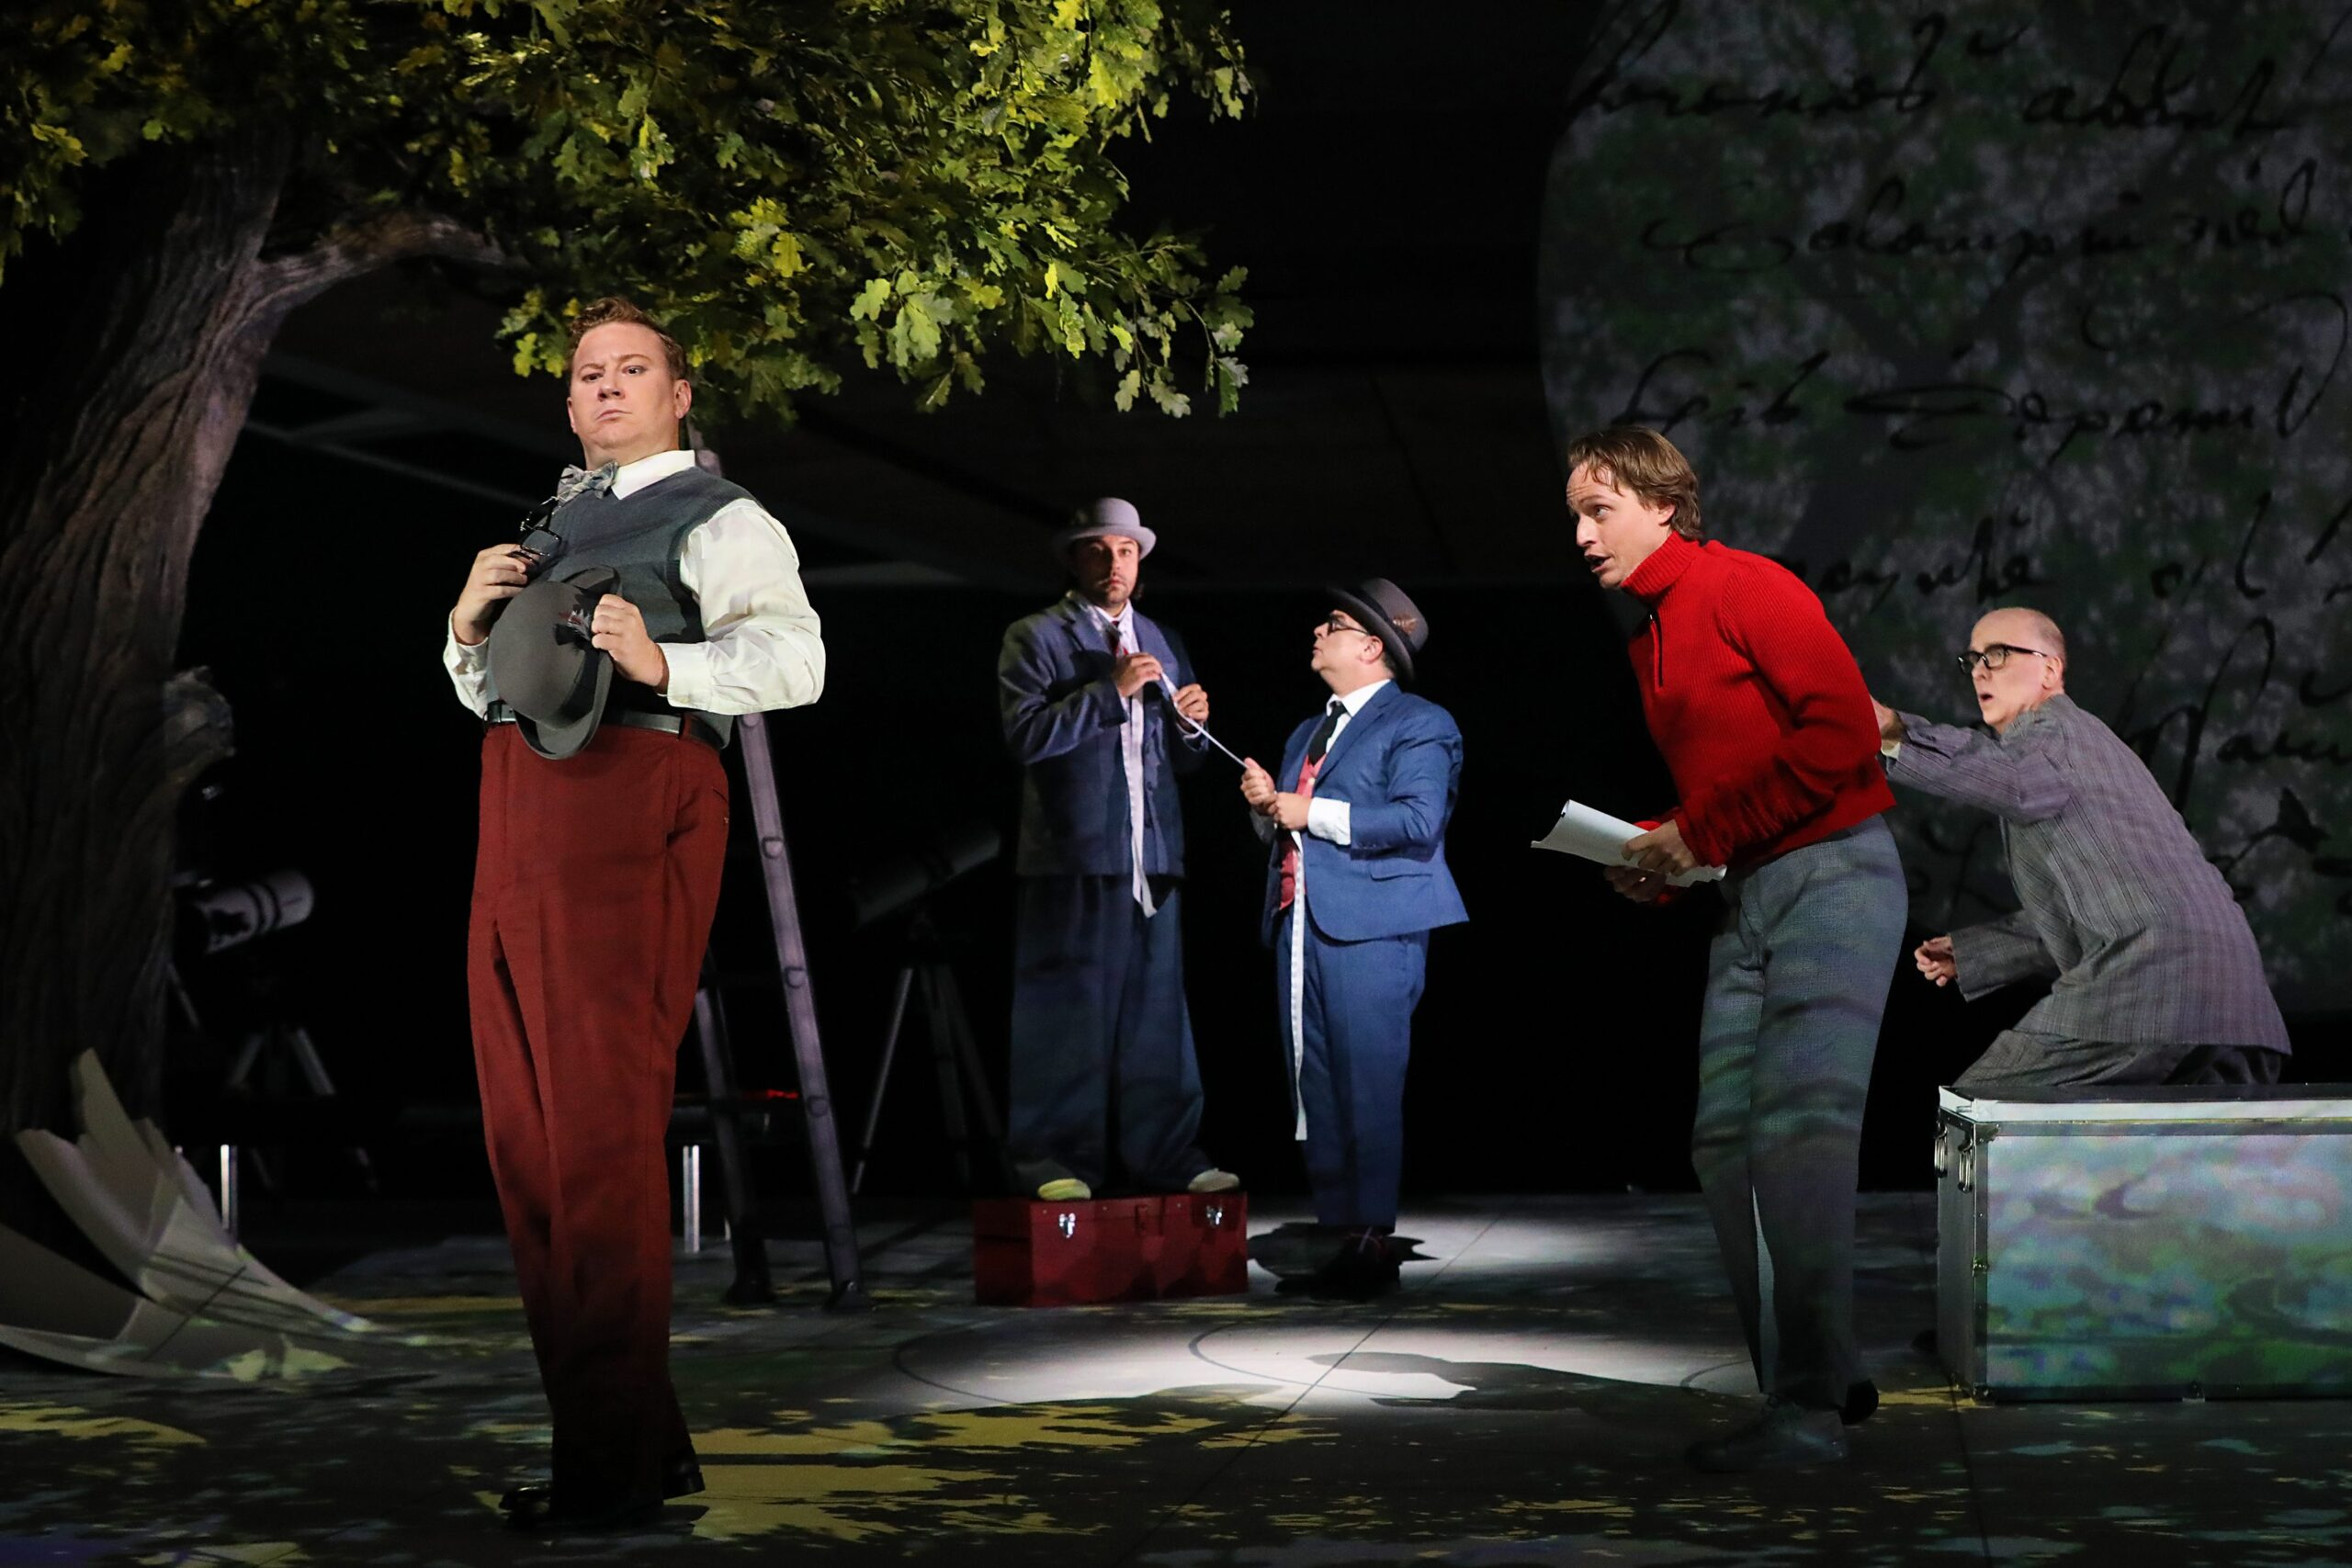 Nicholas Brownlee (Bottom), Matthew Grills (Snout), Patrick Carfizzi (Starveling), Brenton Ryan (Flute), Kevin Burdette (Quince). Photo by Curtis Brown for the Santa Fe Opera, 2021.